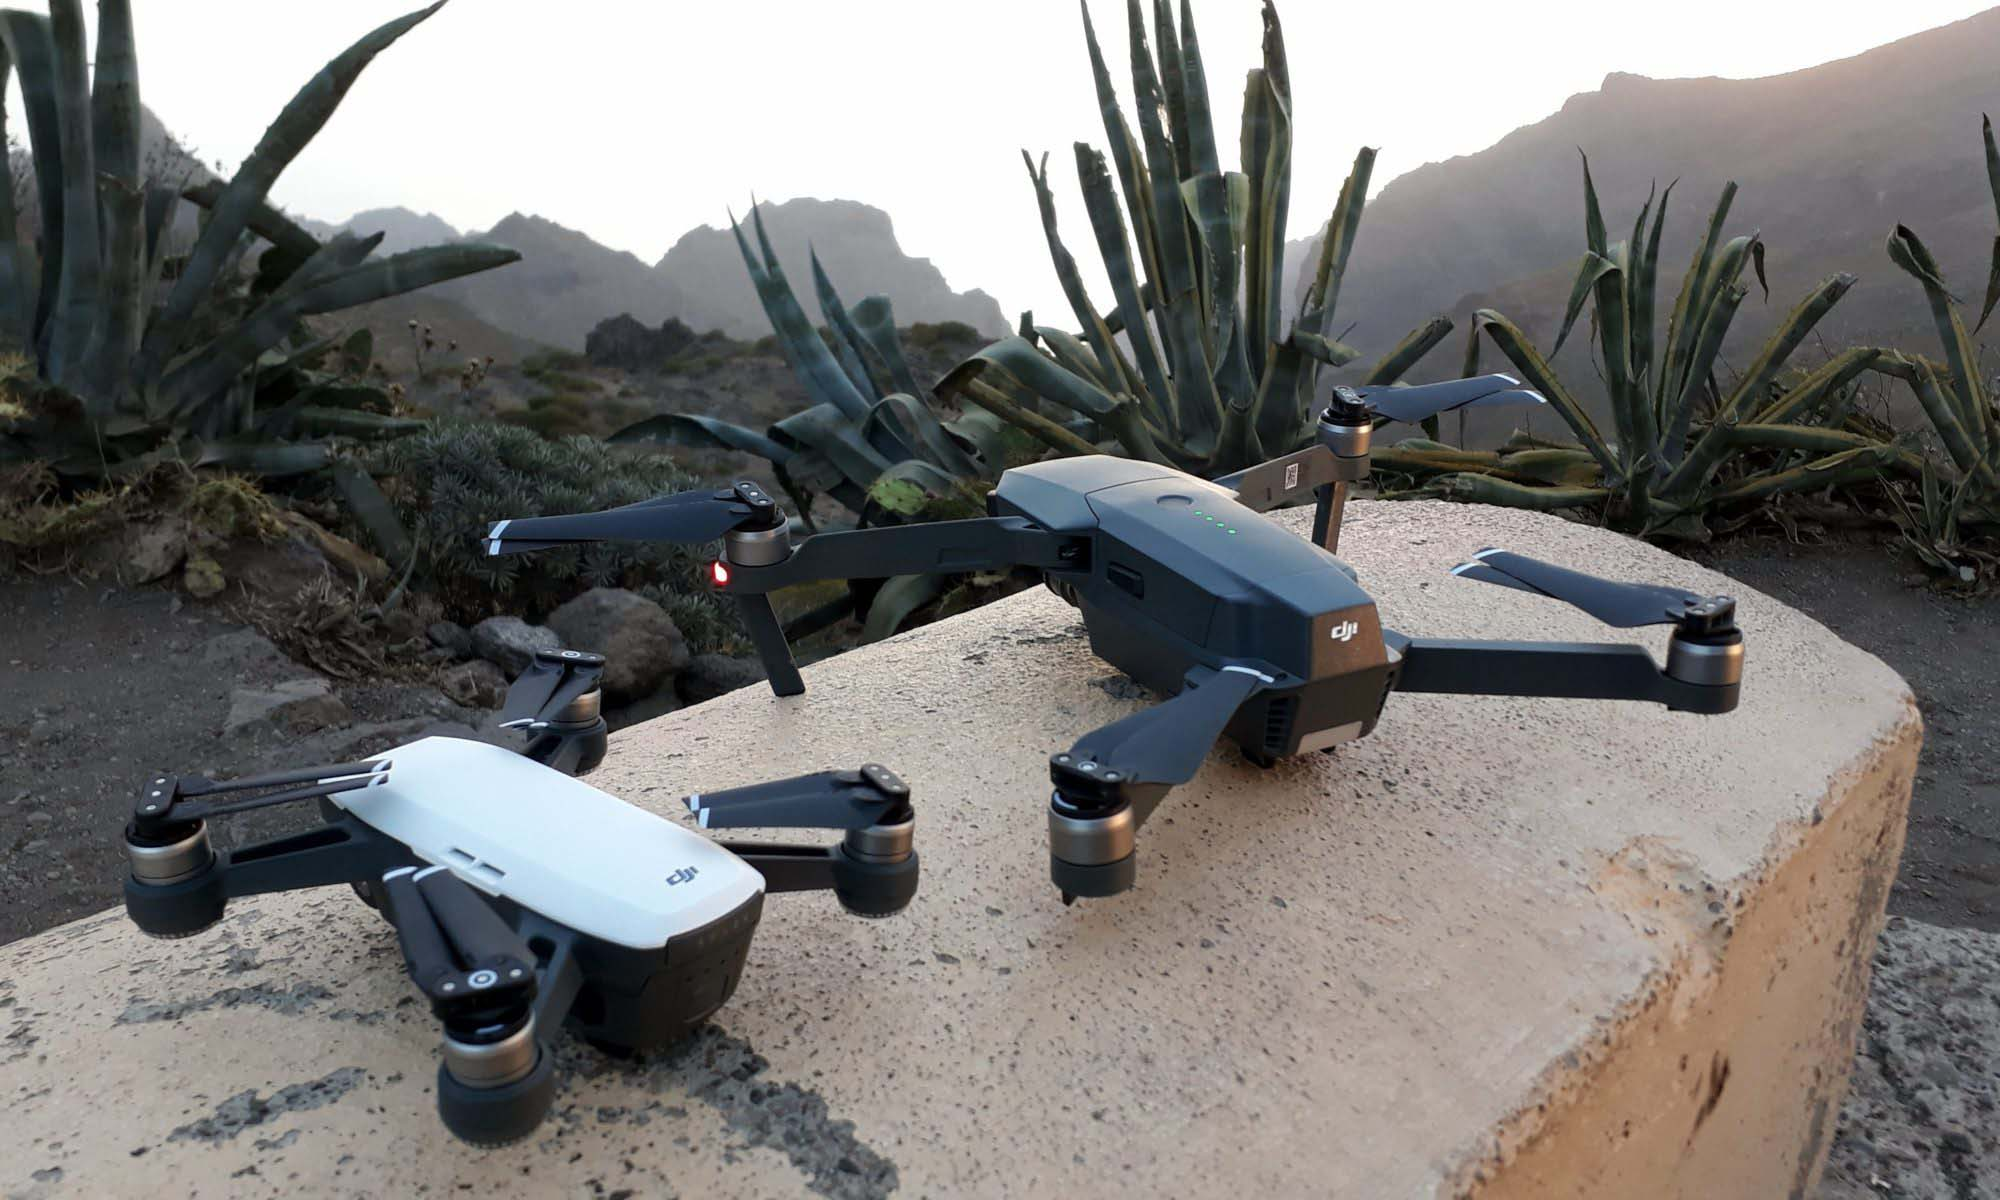 DJI Spark vs. DJI Mavic Pro: Which Drone Is Right For Me?